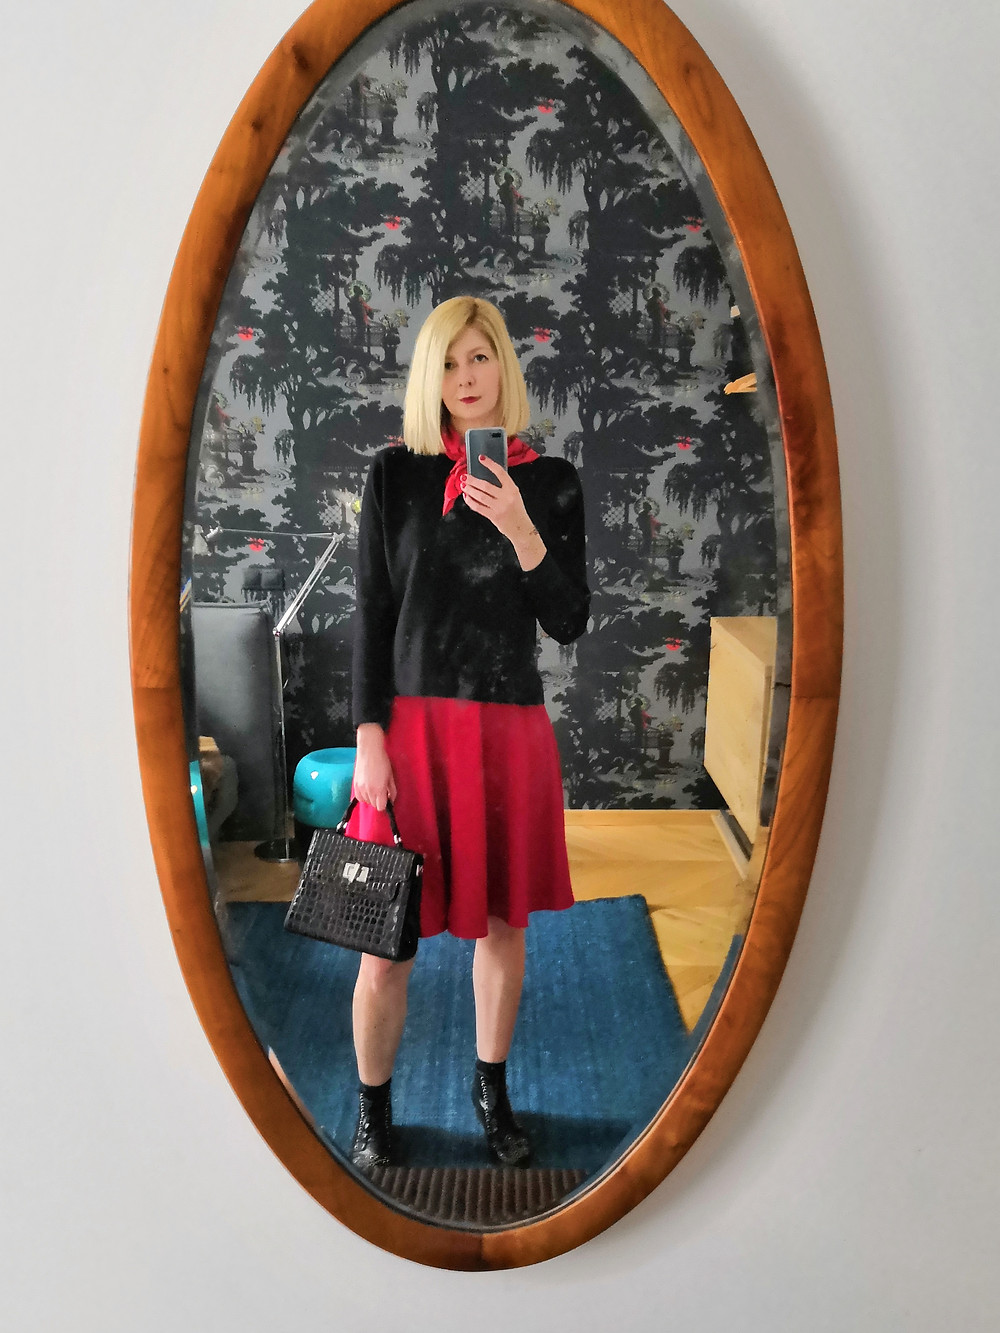 A vintage inspired day look with the red skater skirt, boxy sweater and matching red neckscarf